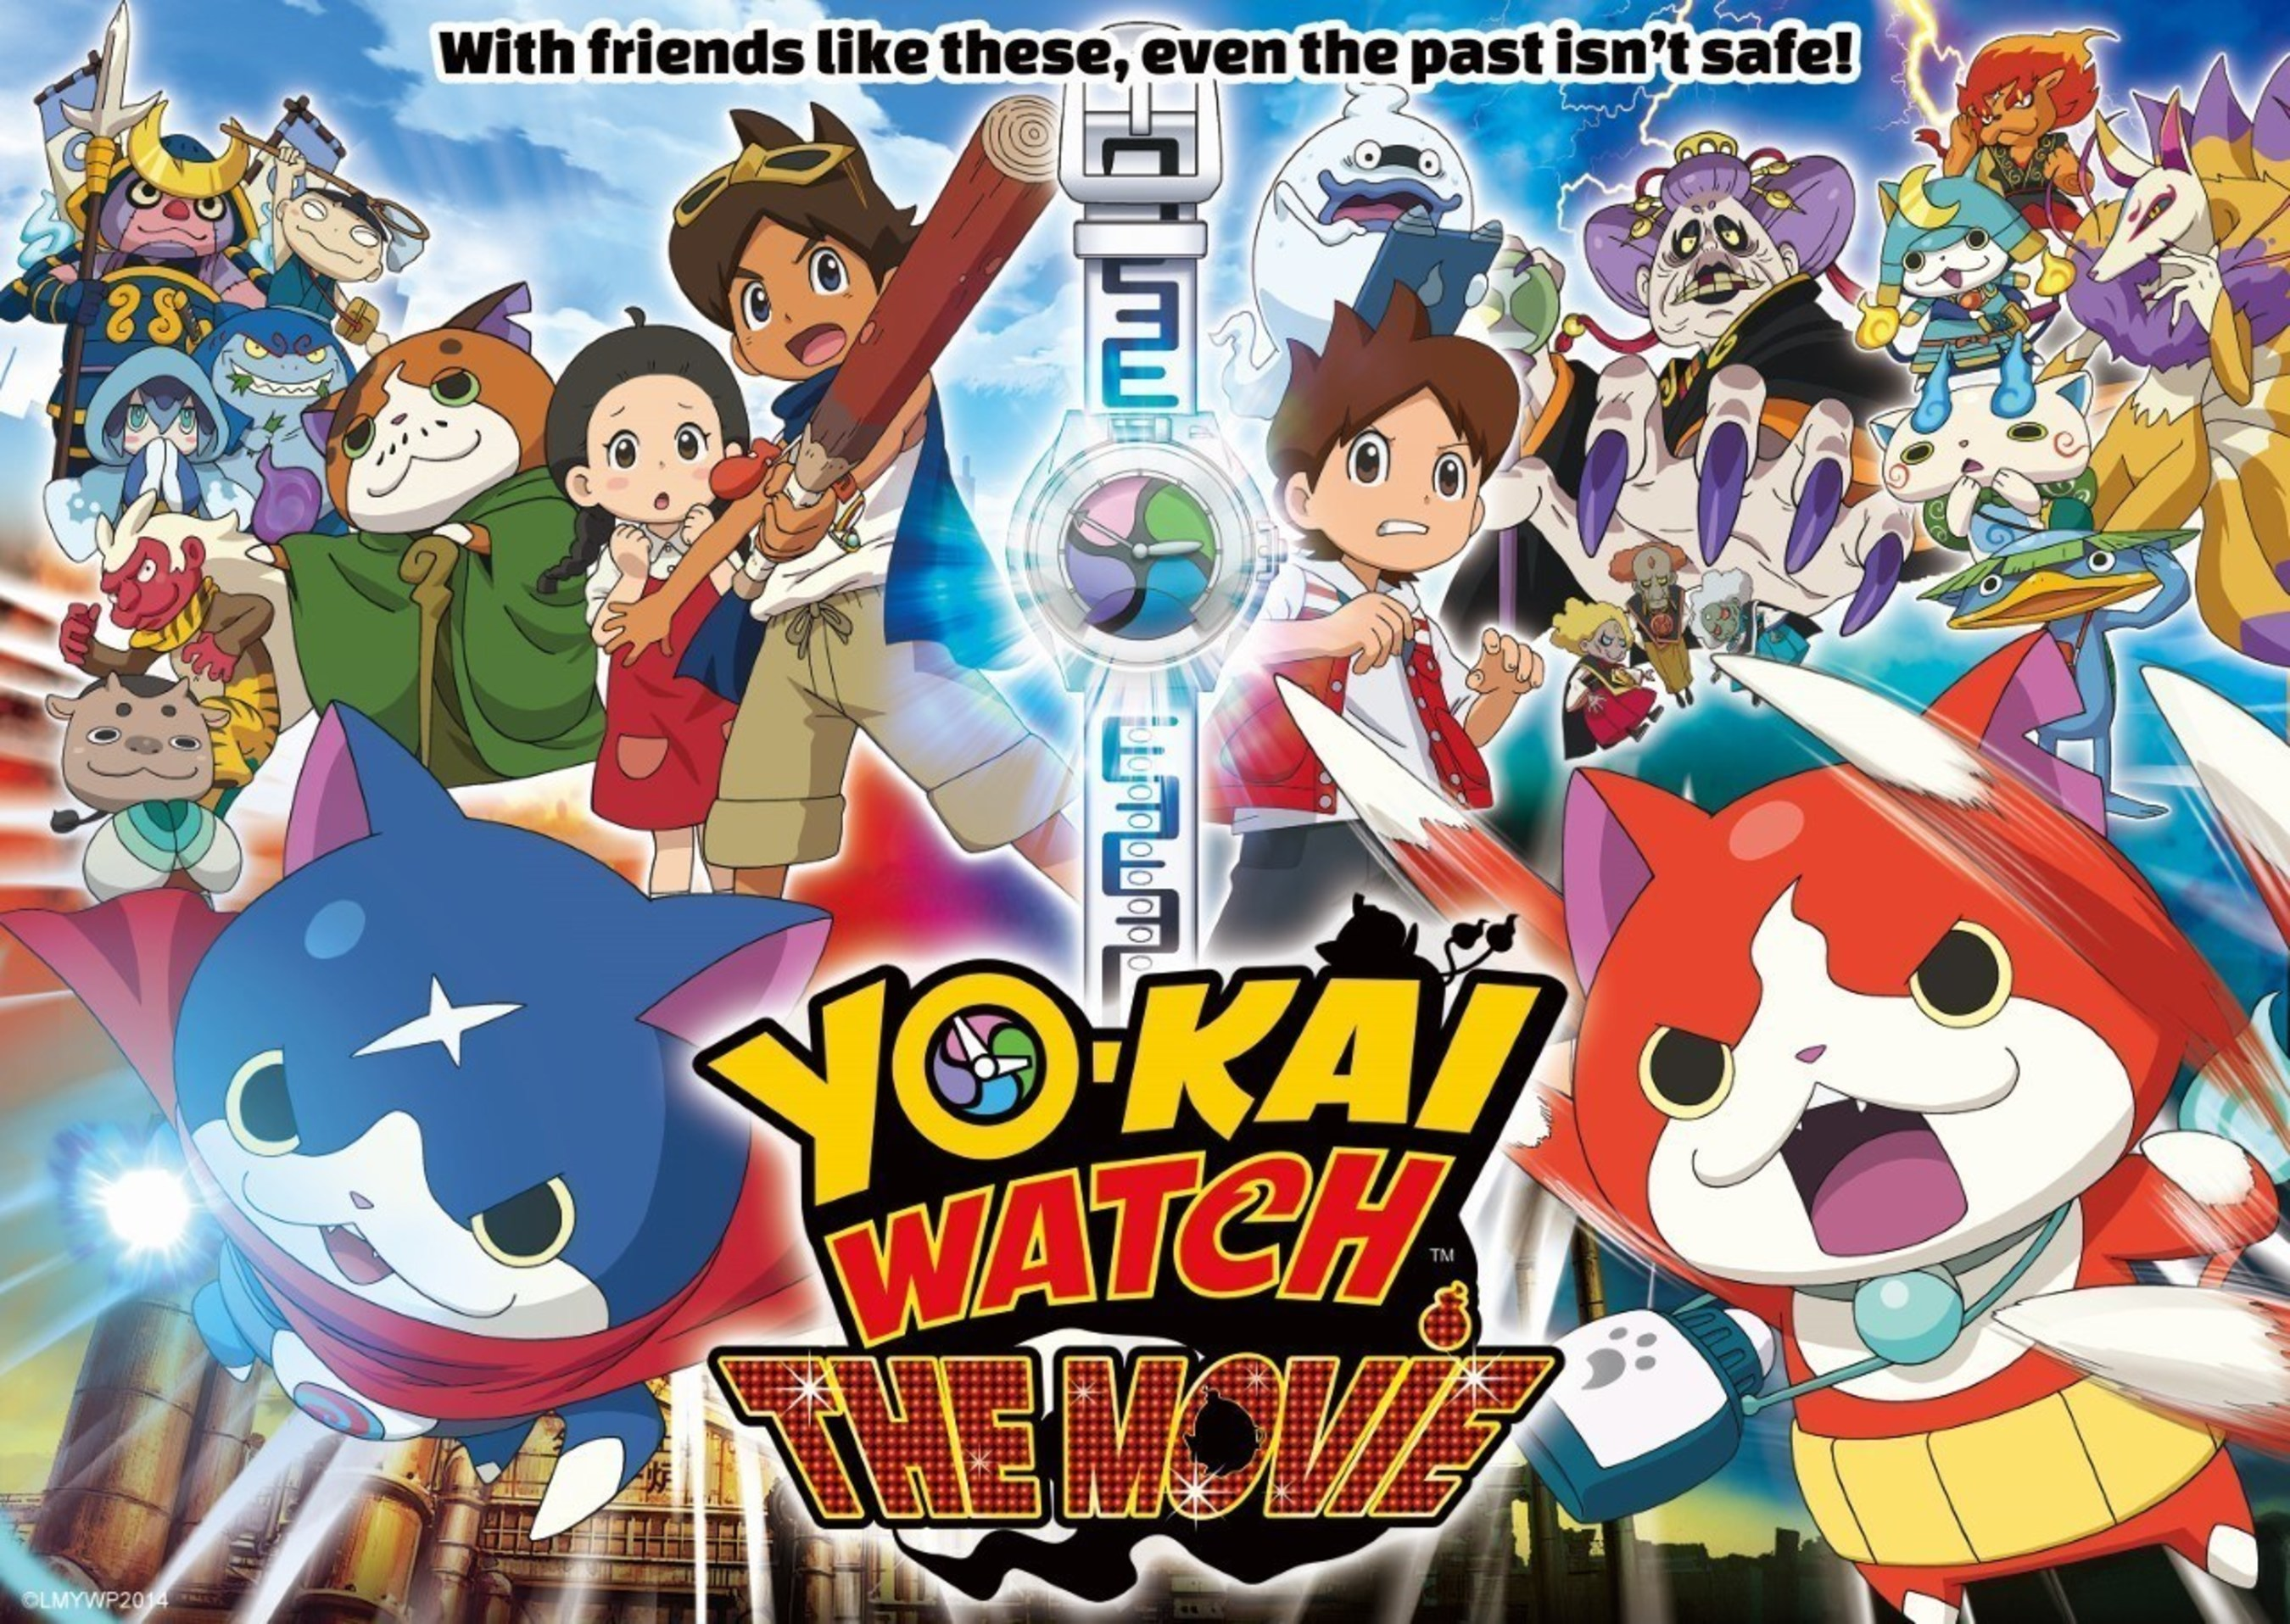 Discover A New Hero As Yo Kai Watch The Movie Event Takes Place